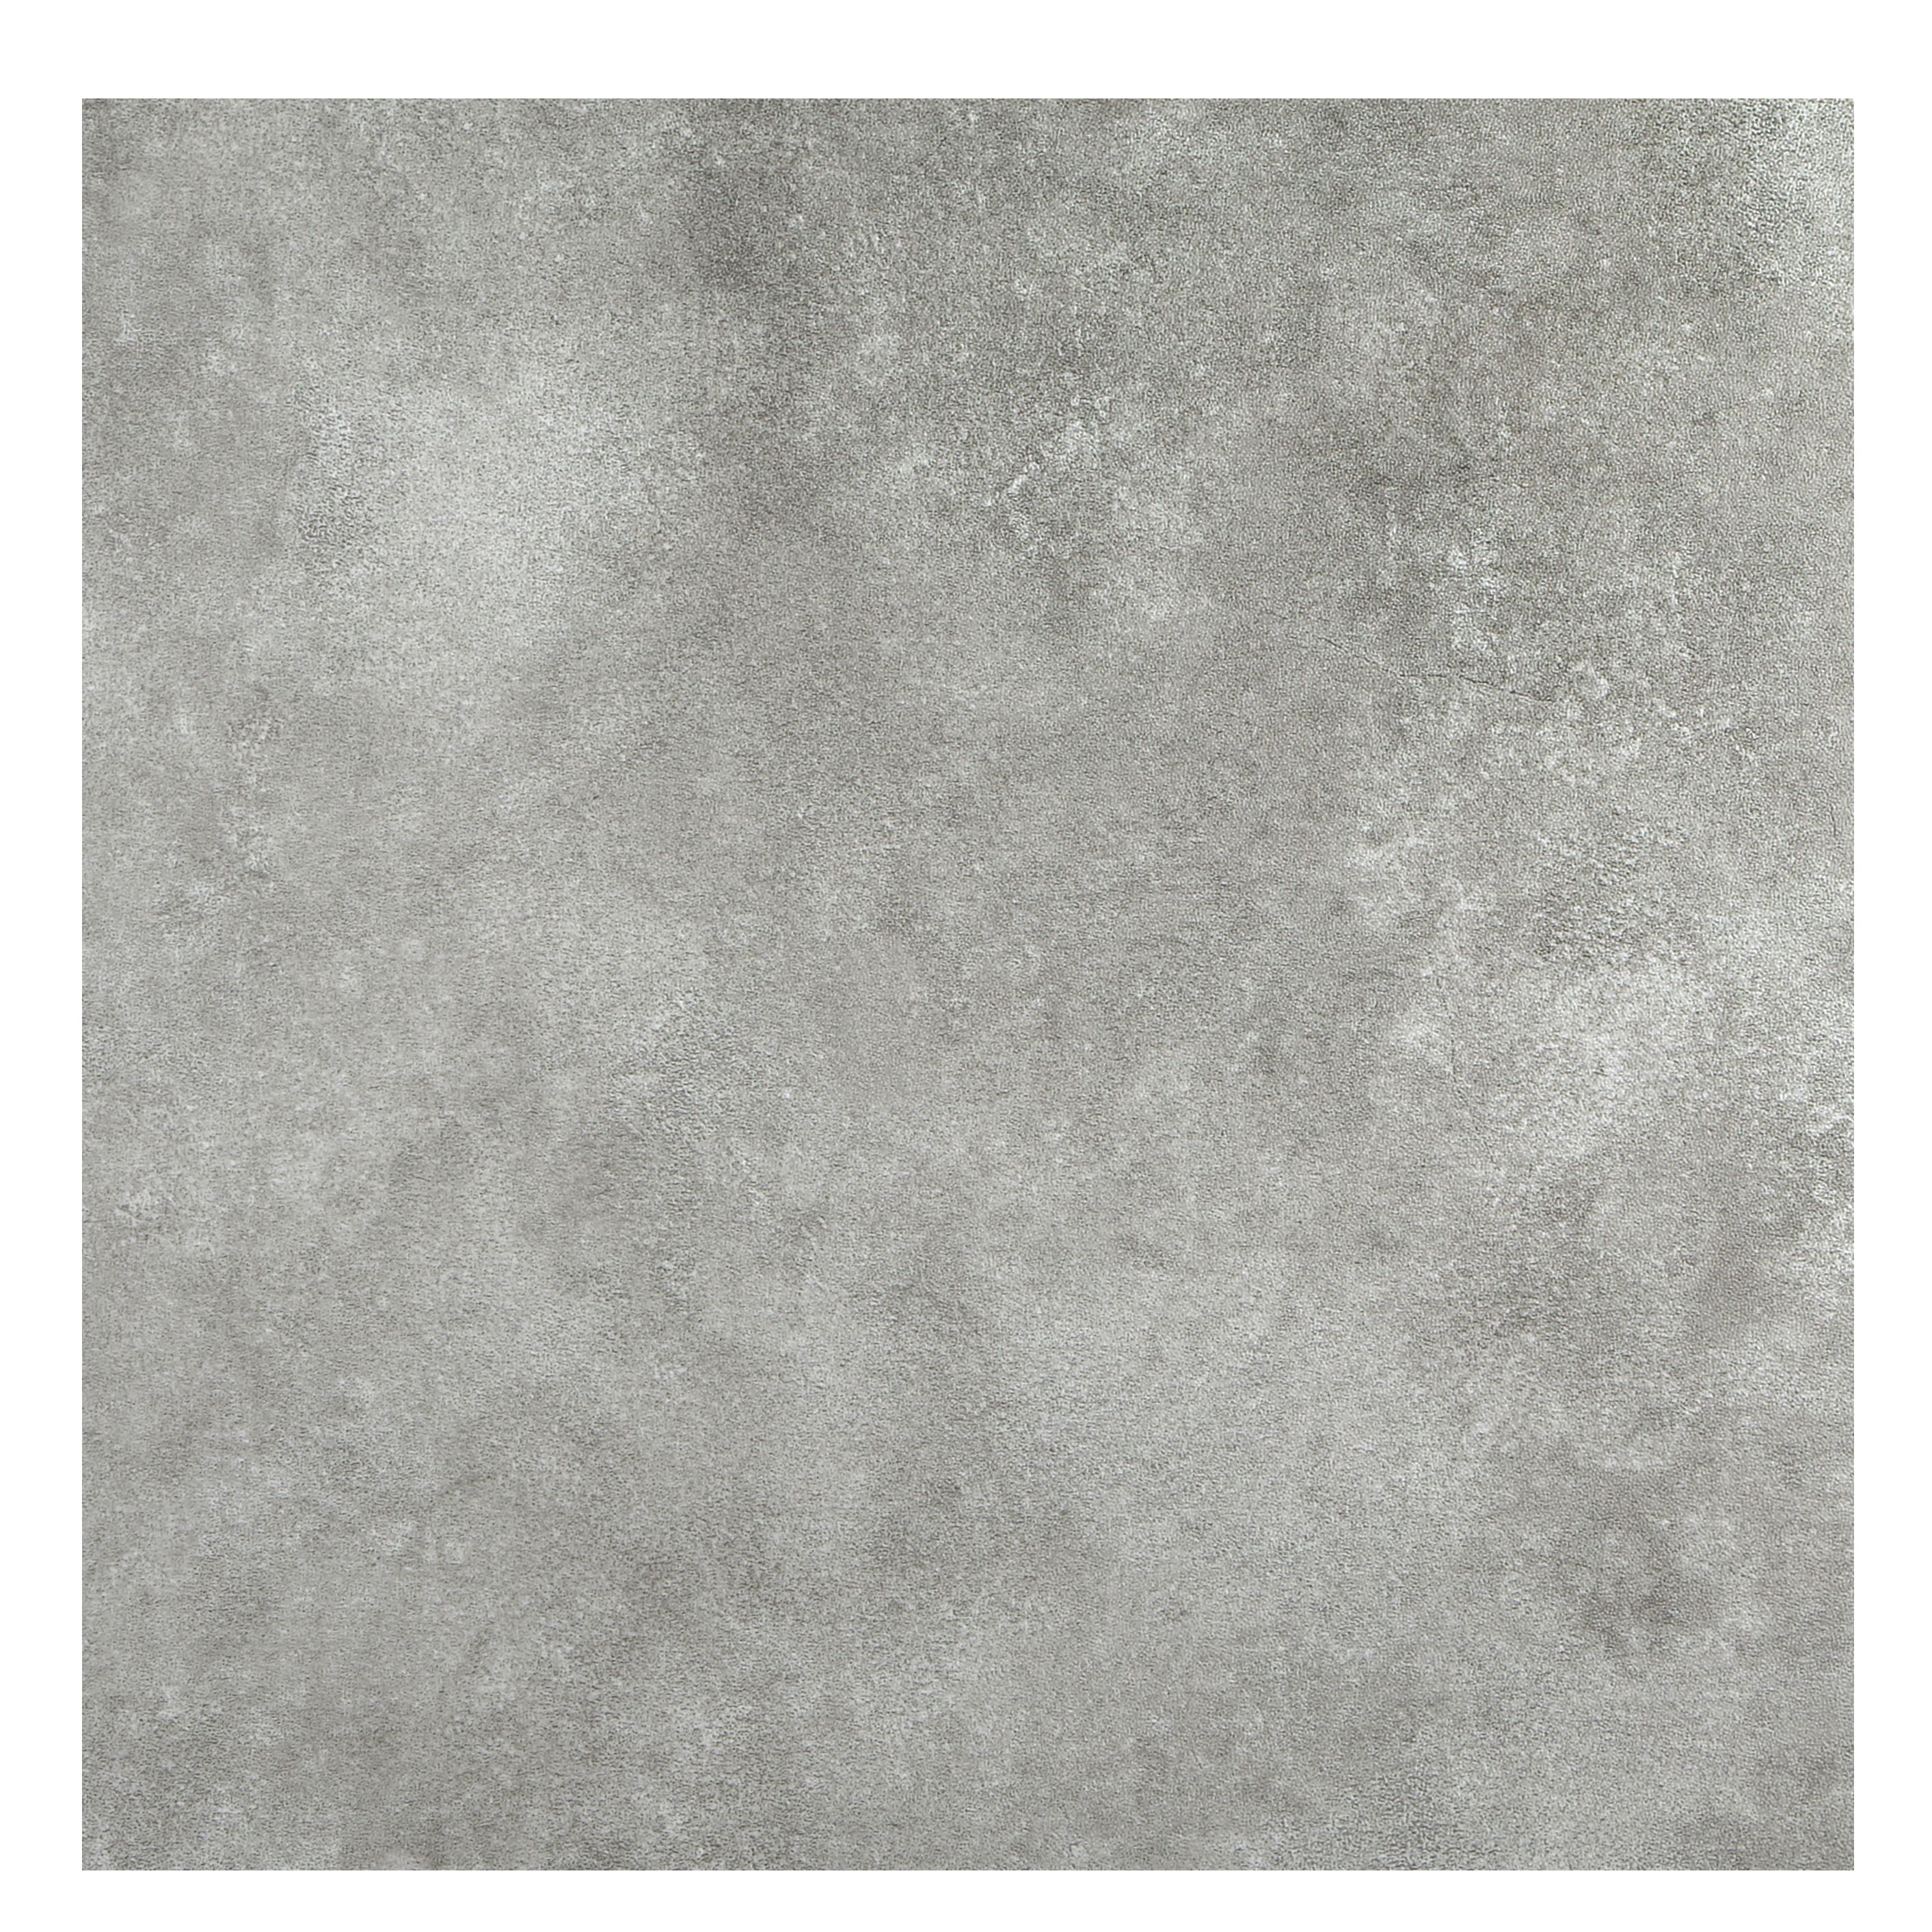 Colours grey stone effect self adhesive vinyl tile for Stone effect vinyl flooring